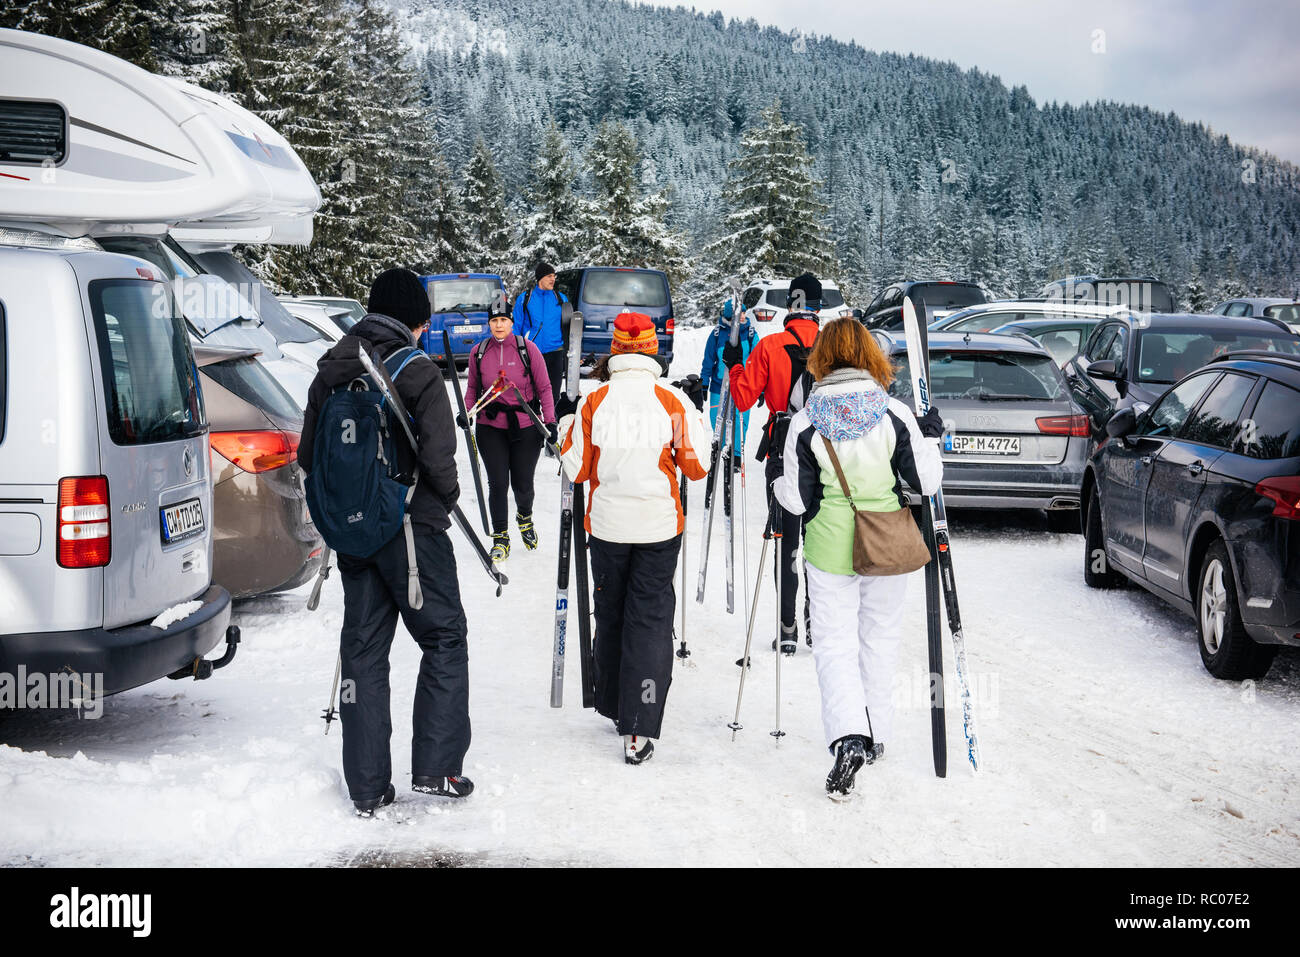 MUMMELSEE, GERMANY - FEB 18, 2018: Winter day with snow with rear view of group of friends in skiing equipment walking toward the slope or cars in the parking  - Stock Image